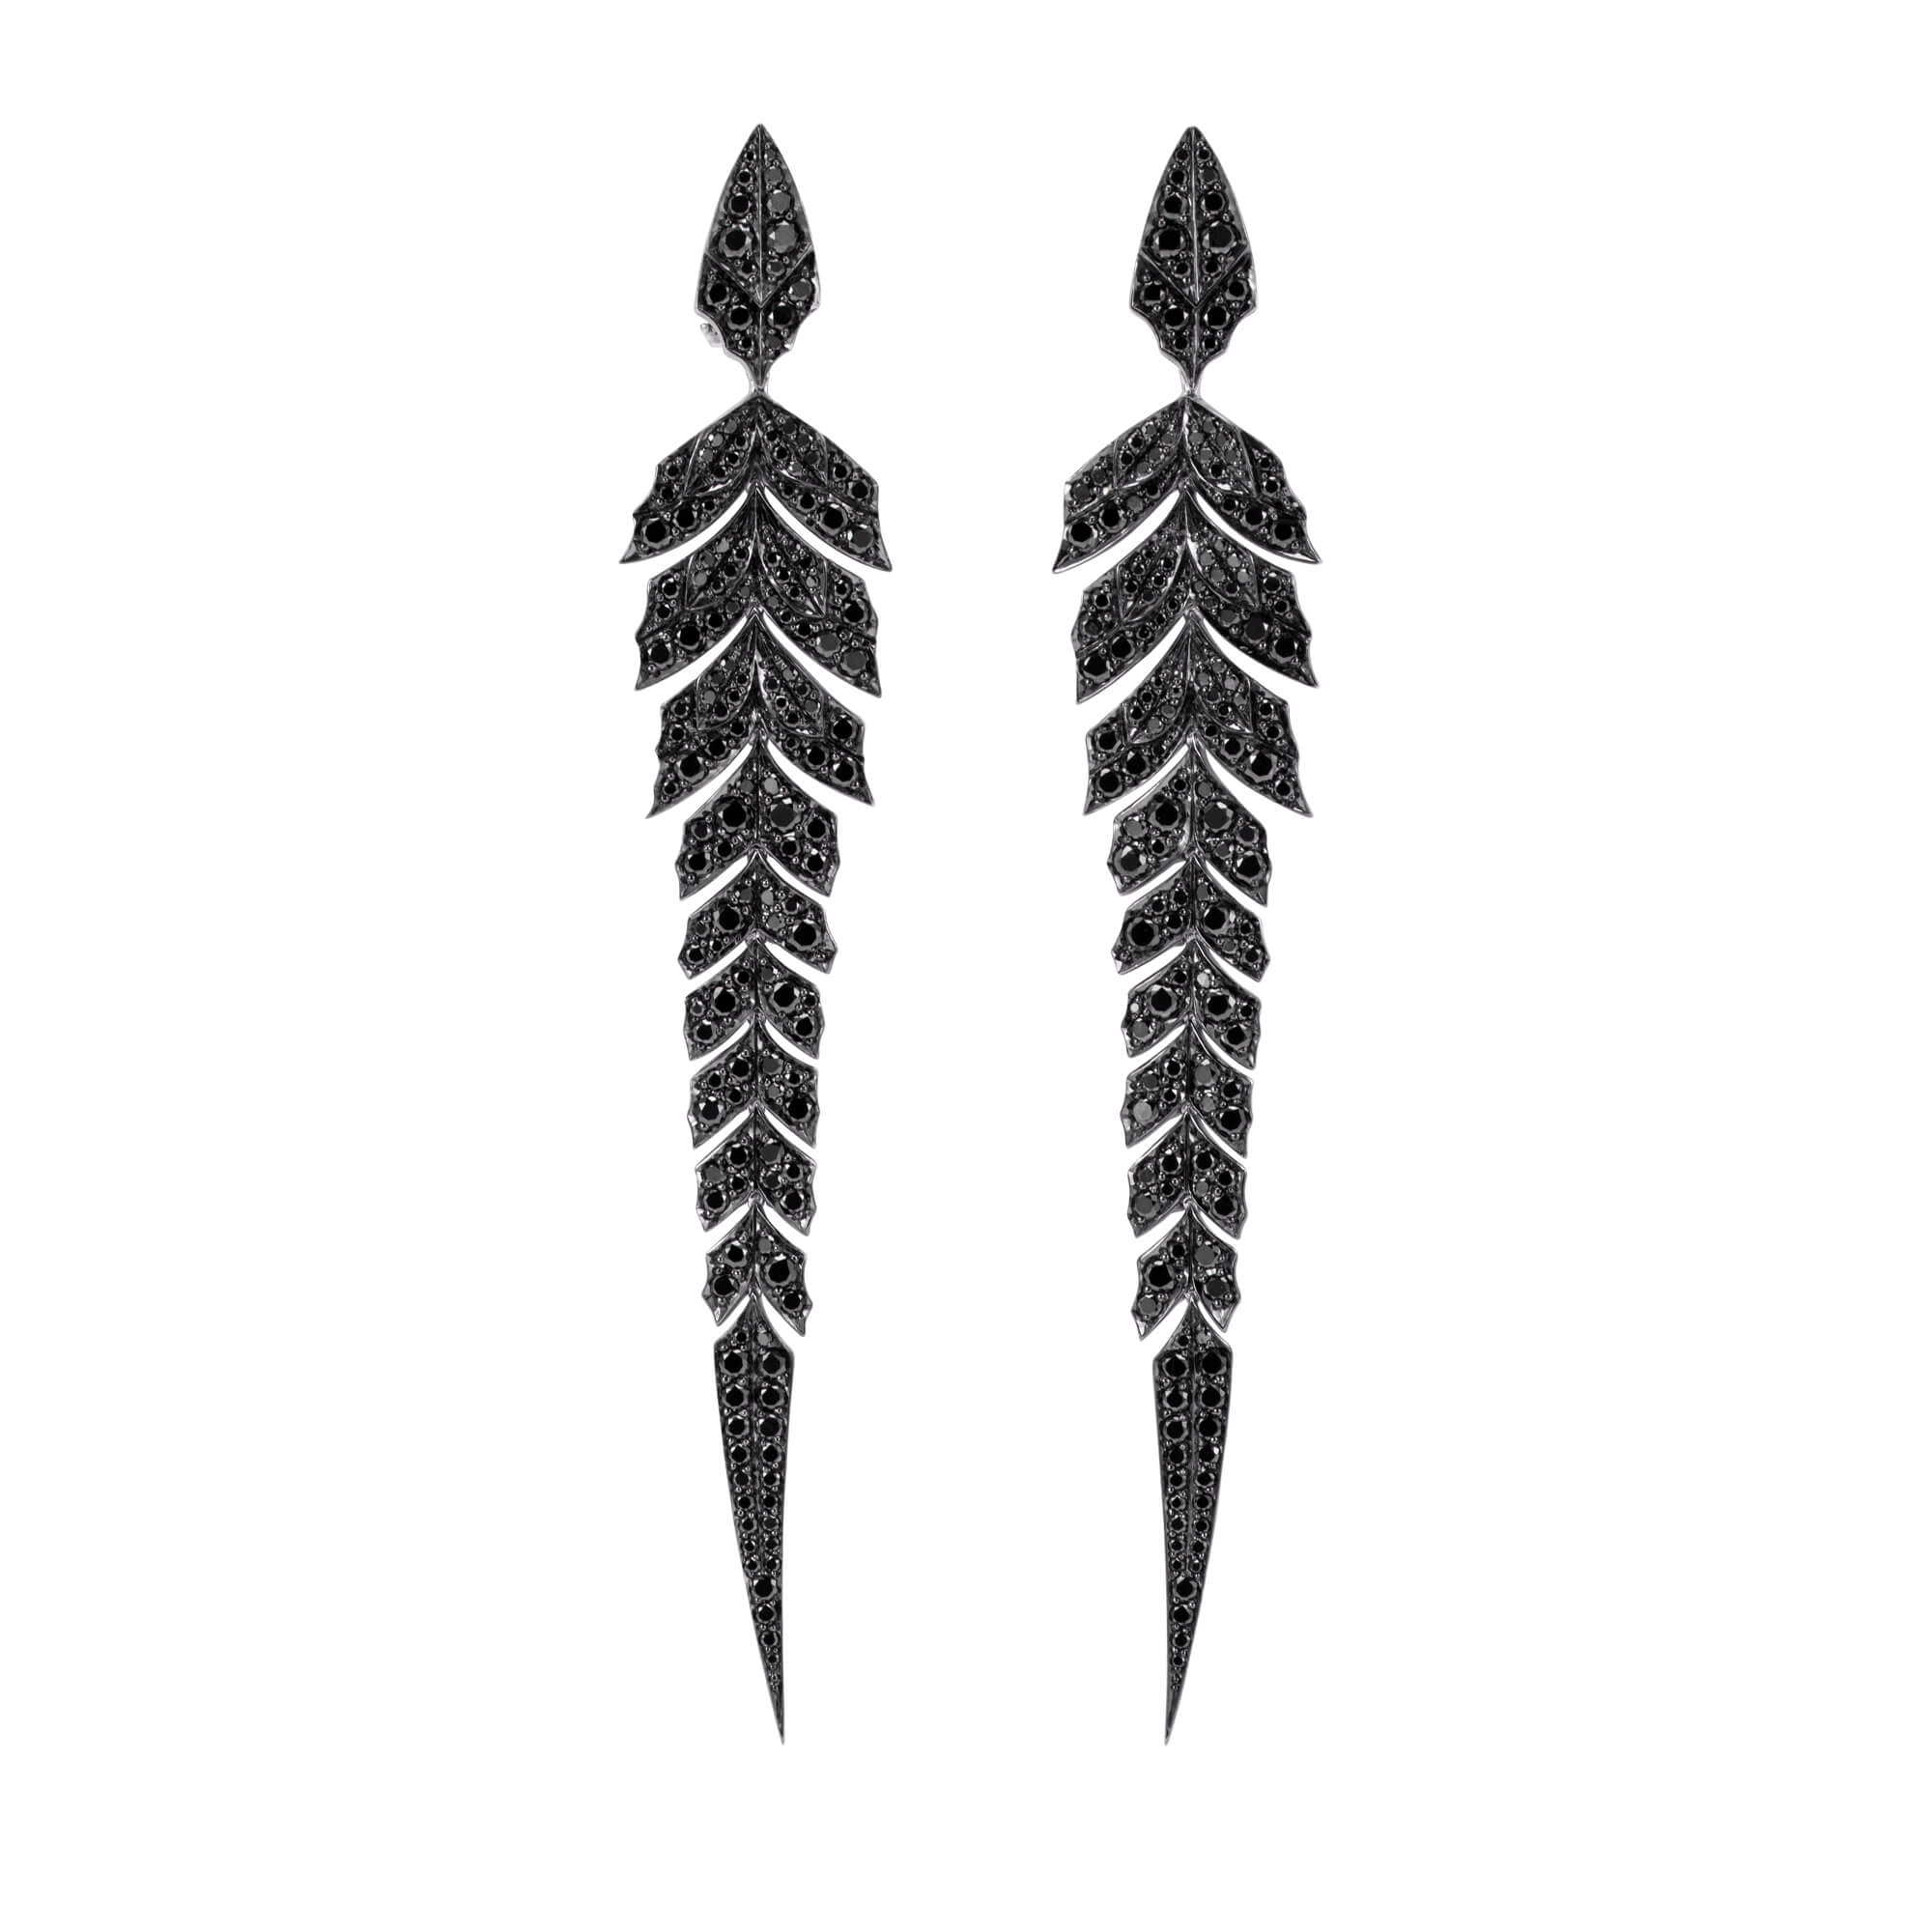 Pavé Earrings With Black Diamonds Set In White Gold | Magnipheasant